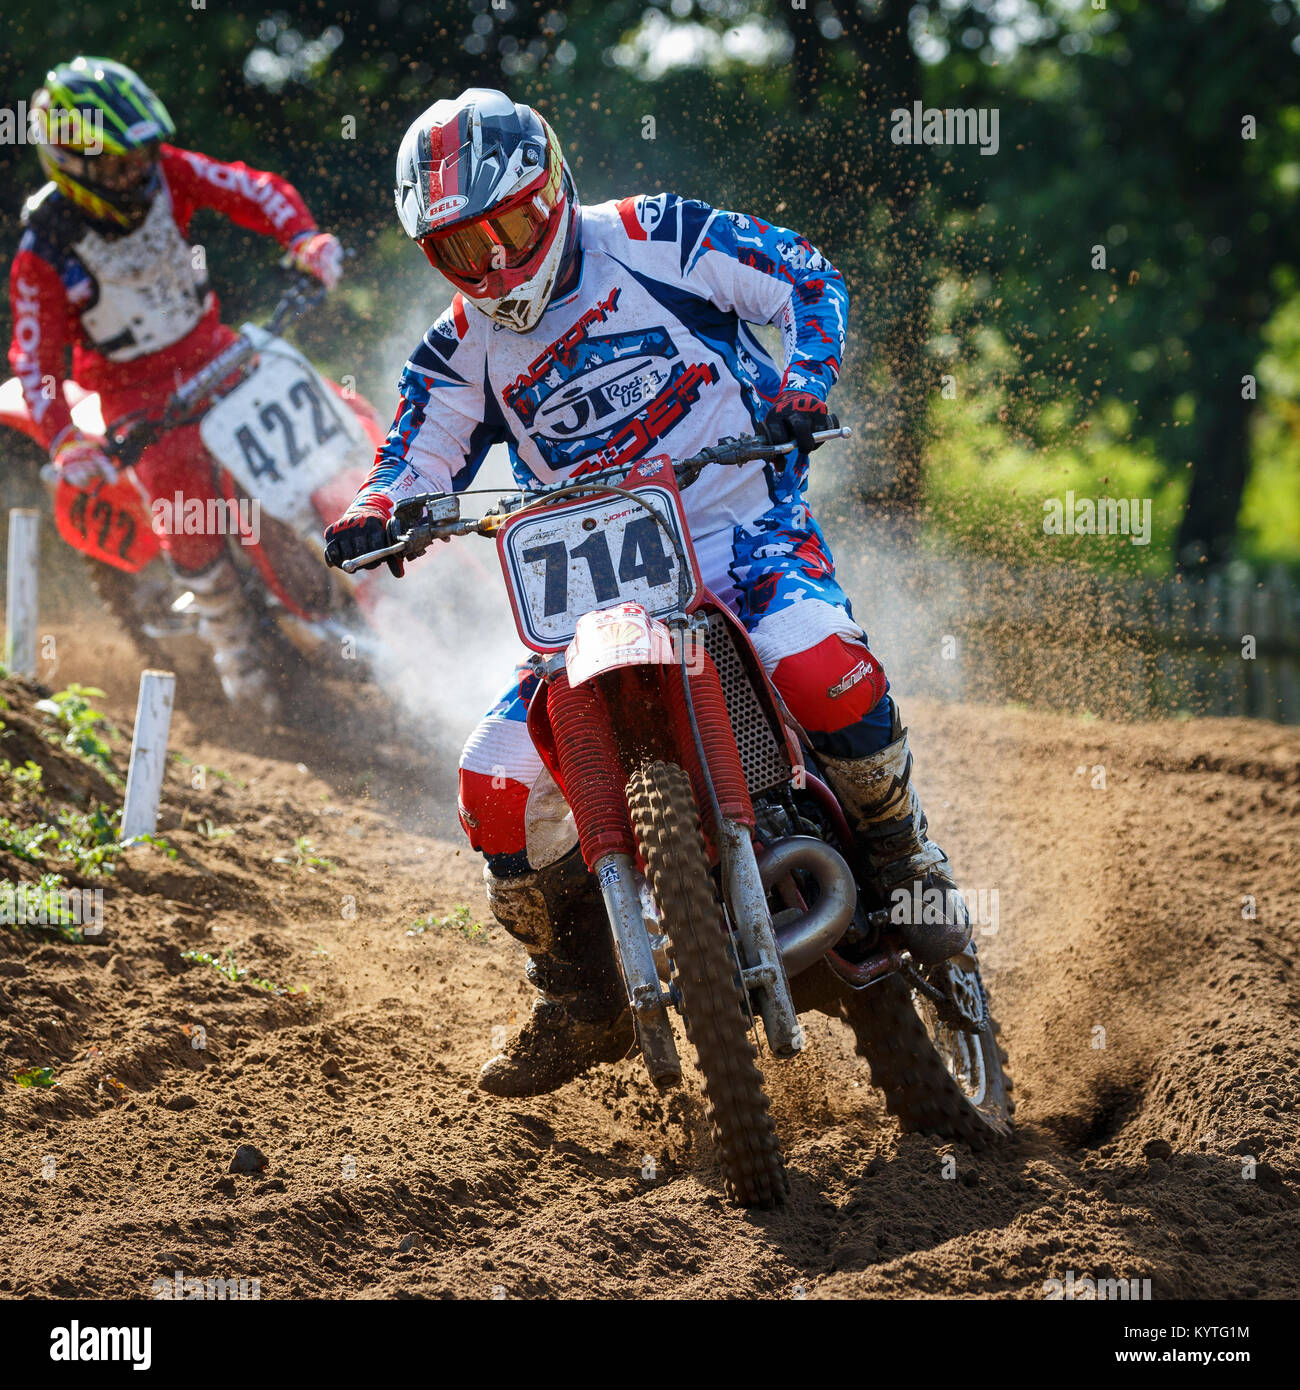 John Hinz on the Ad-Tech Raceworks Honda 250 at the NGR & ACU Eastern EVO Championships, Cadders Hill, Lyng, - Stock Image